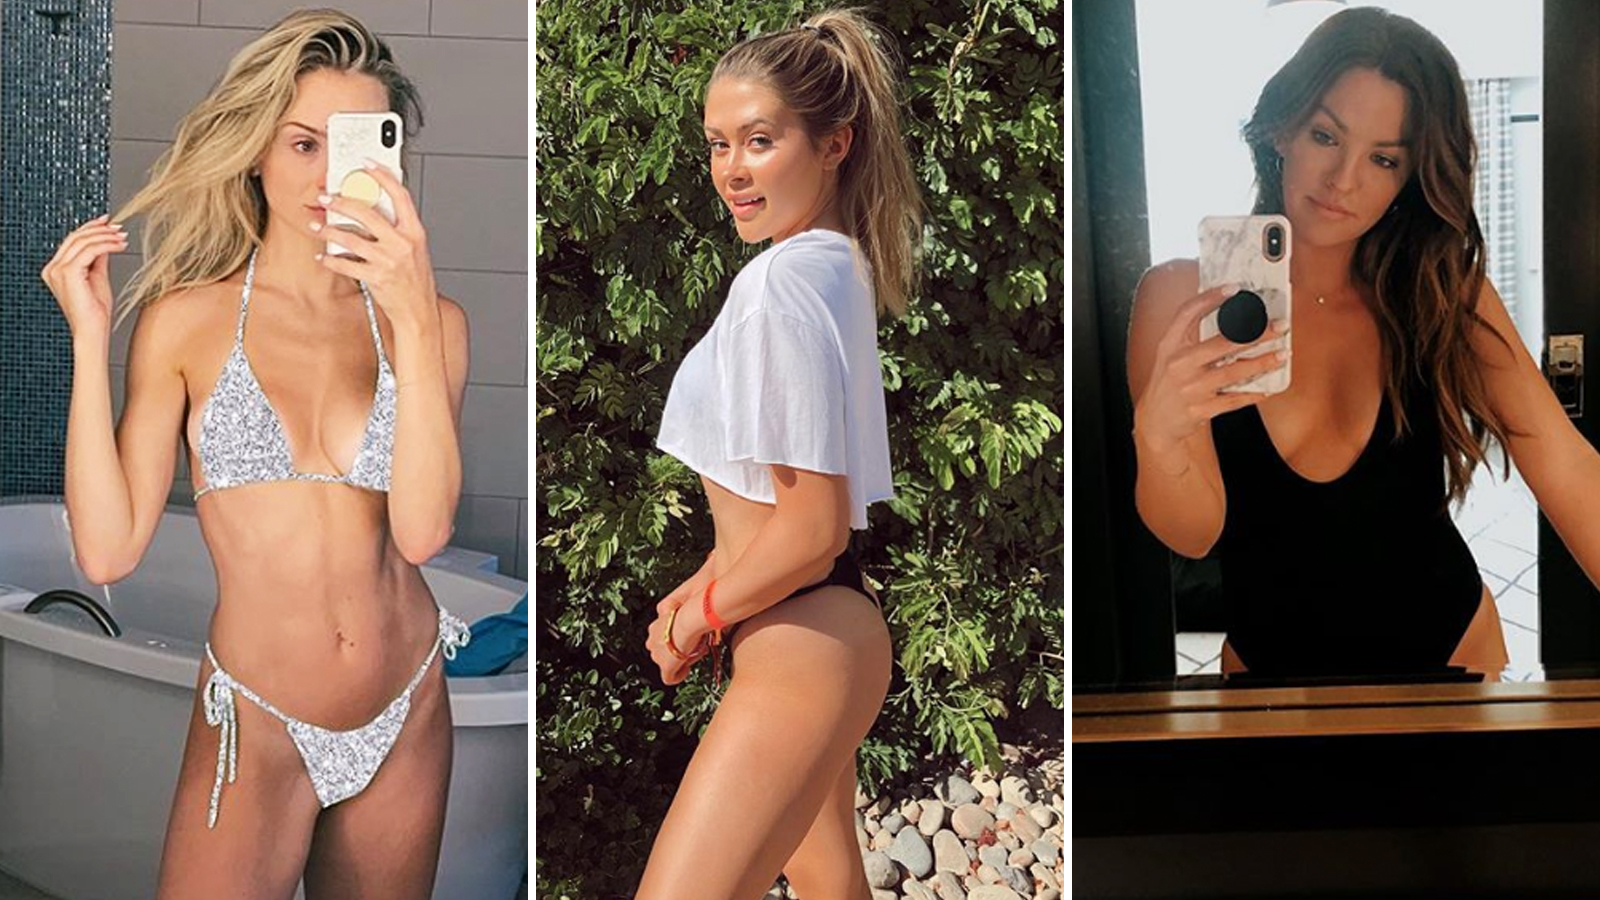 Bachelor Nation Stars Who Have the Most Insane Bikini Bodies